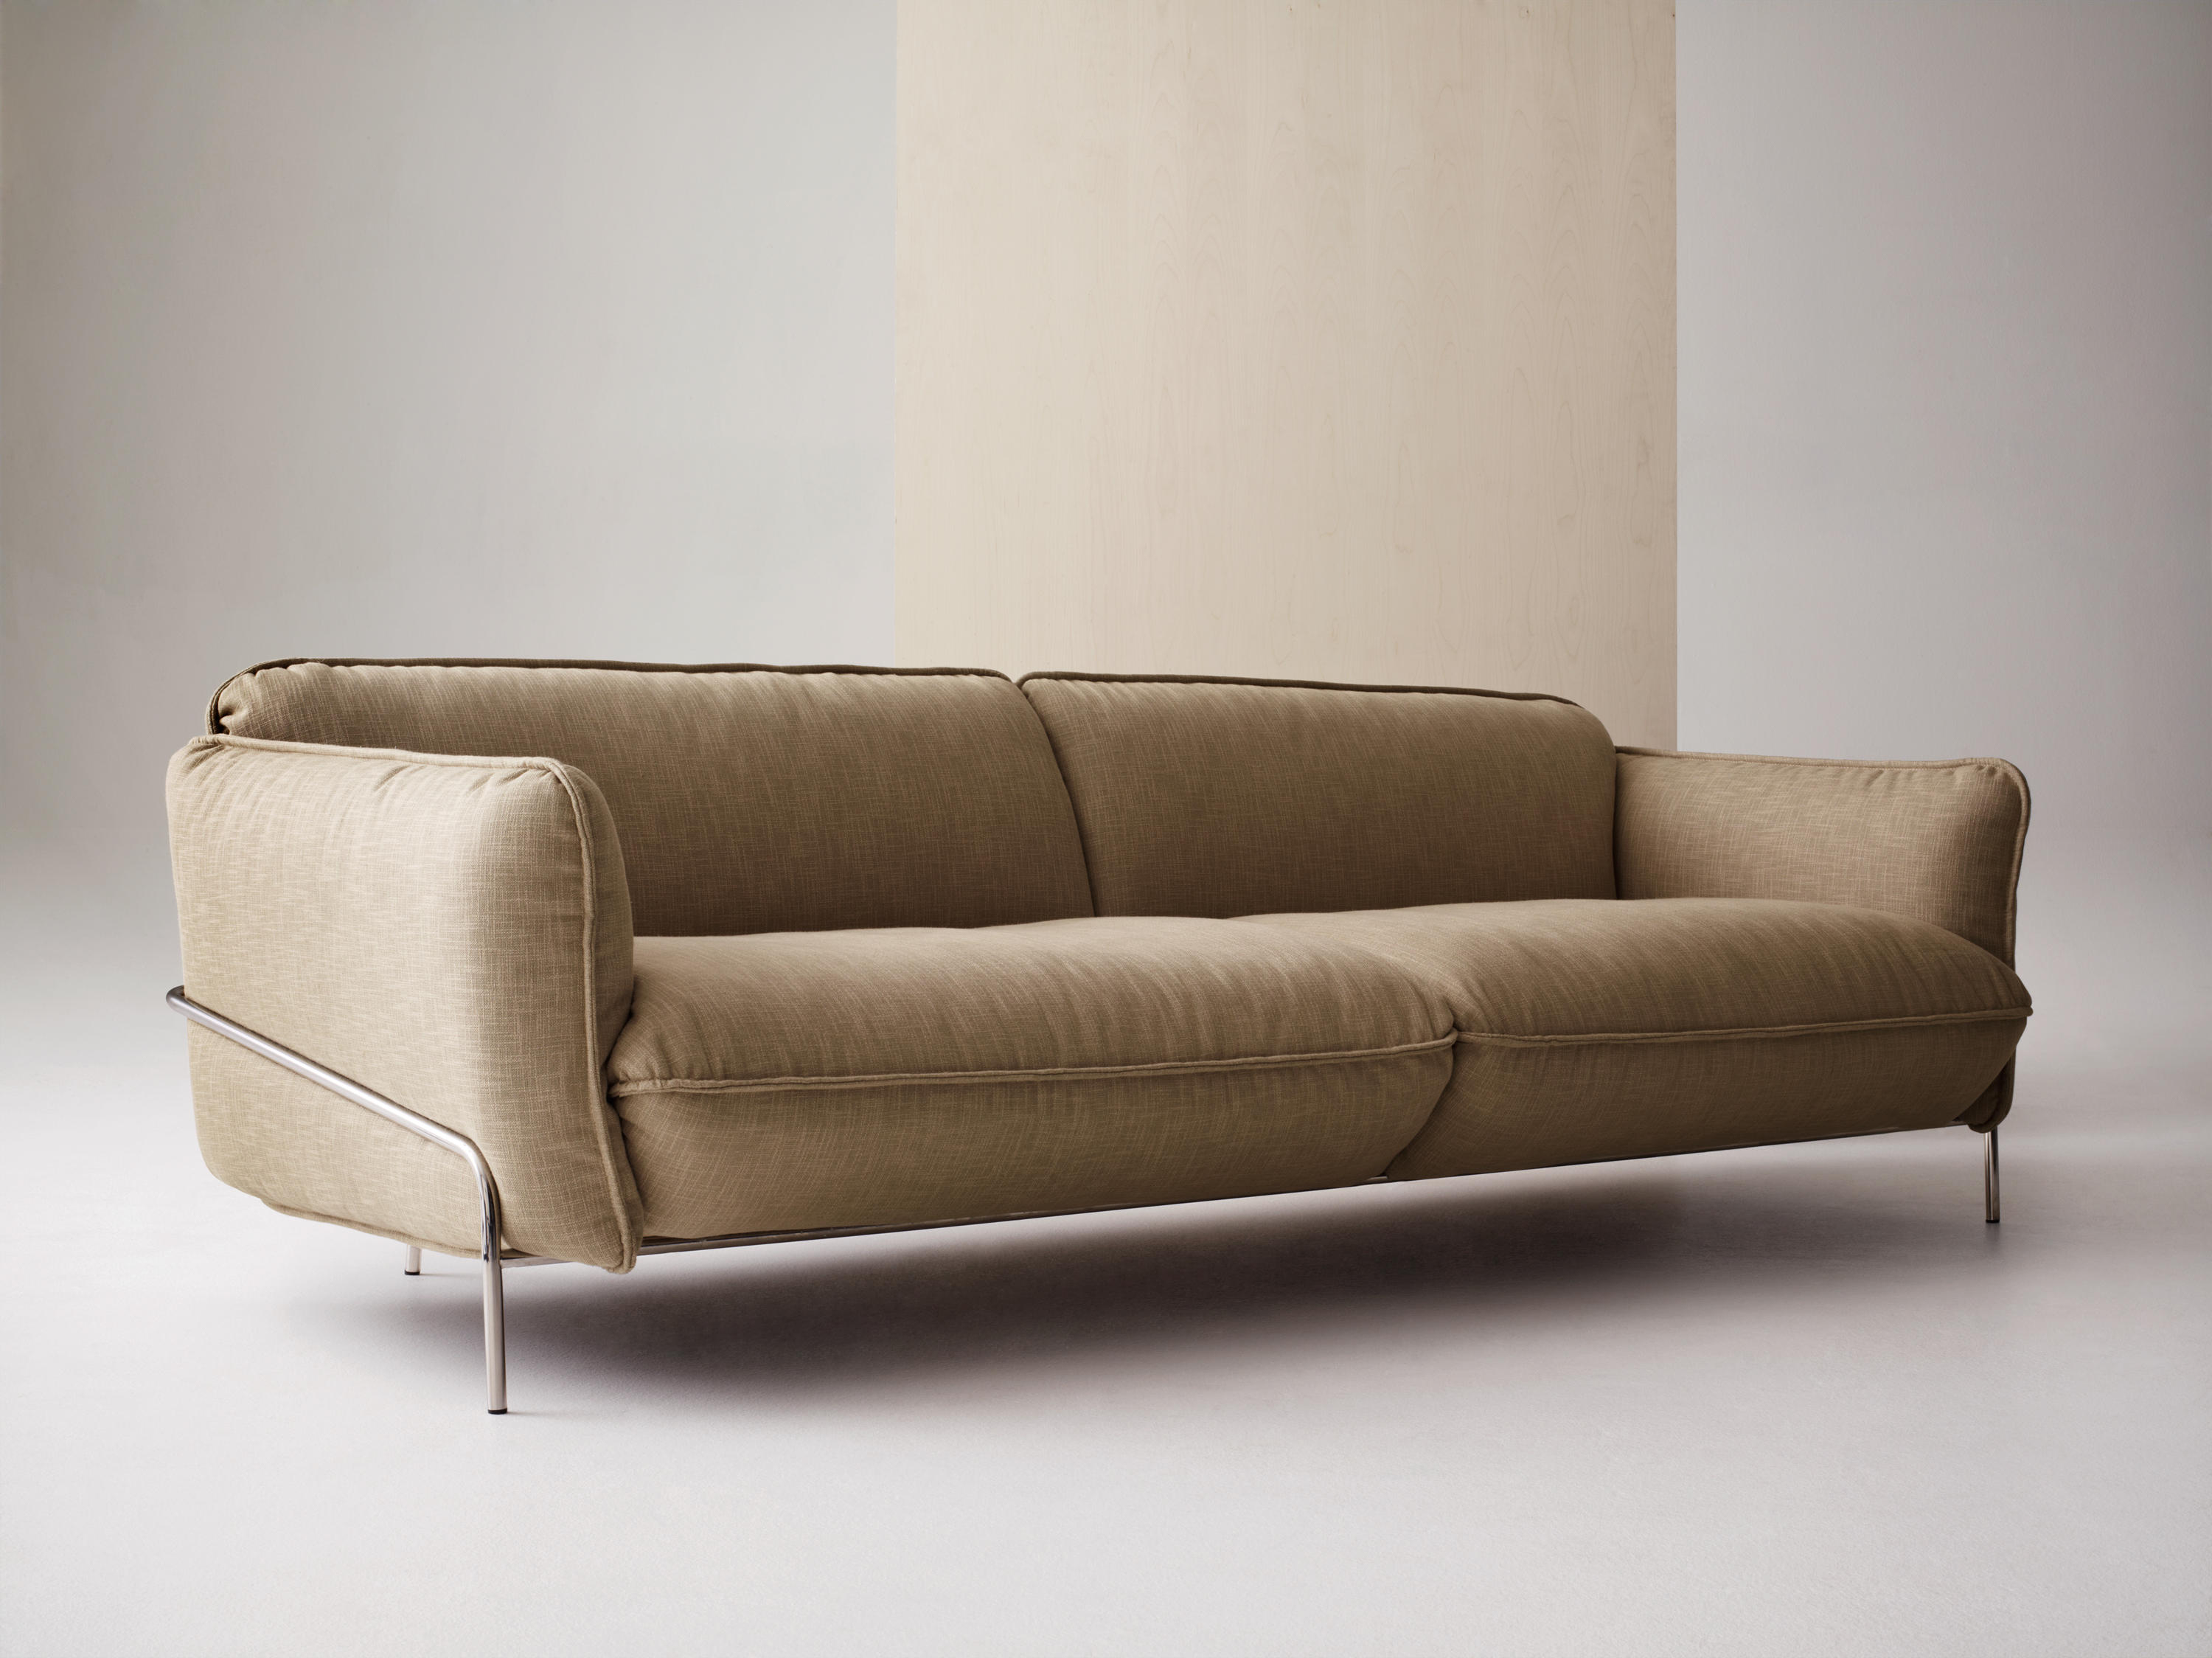 Continental Sofa - Sofas From Swedese | Architonic encequiconcerne Sofa